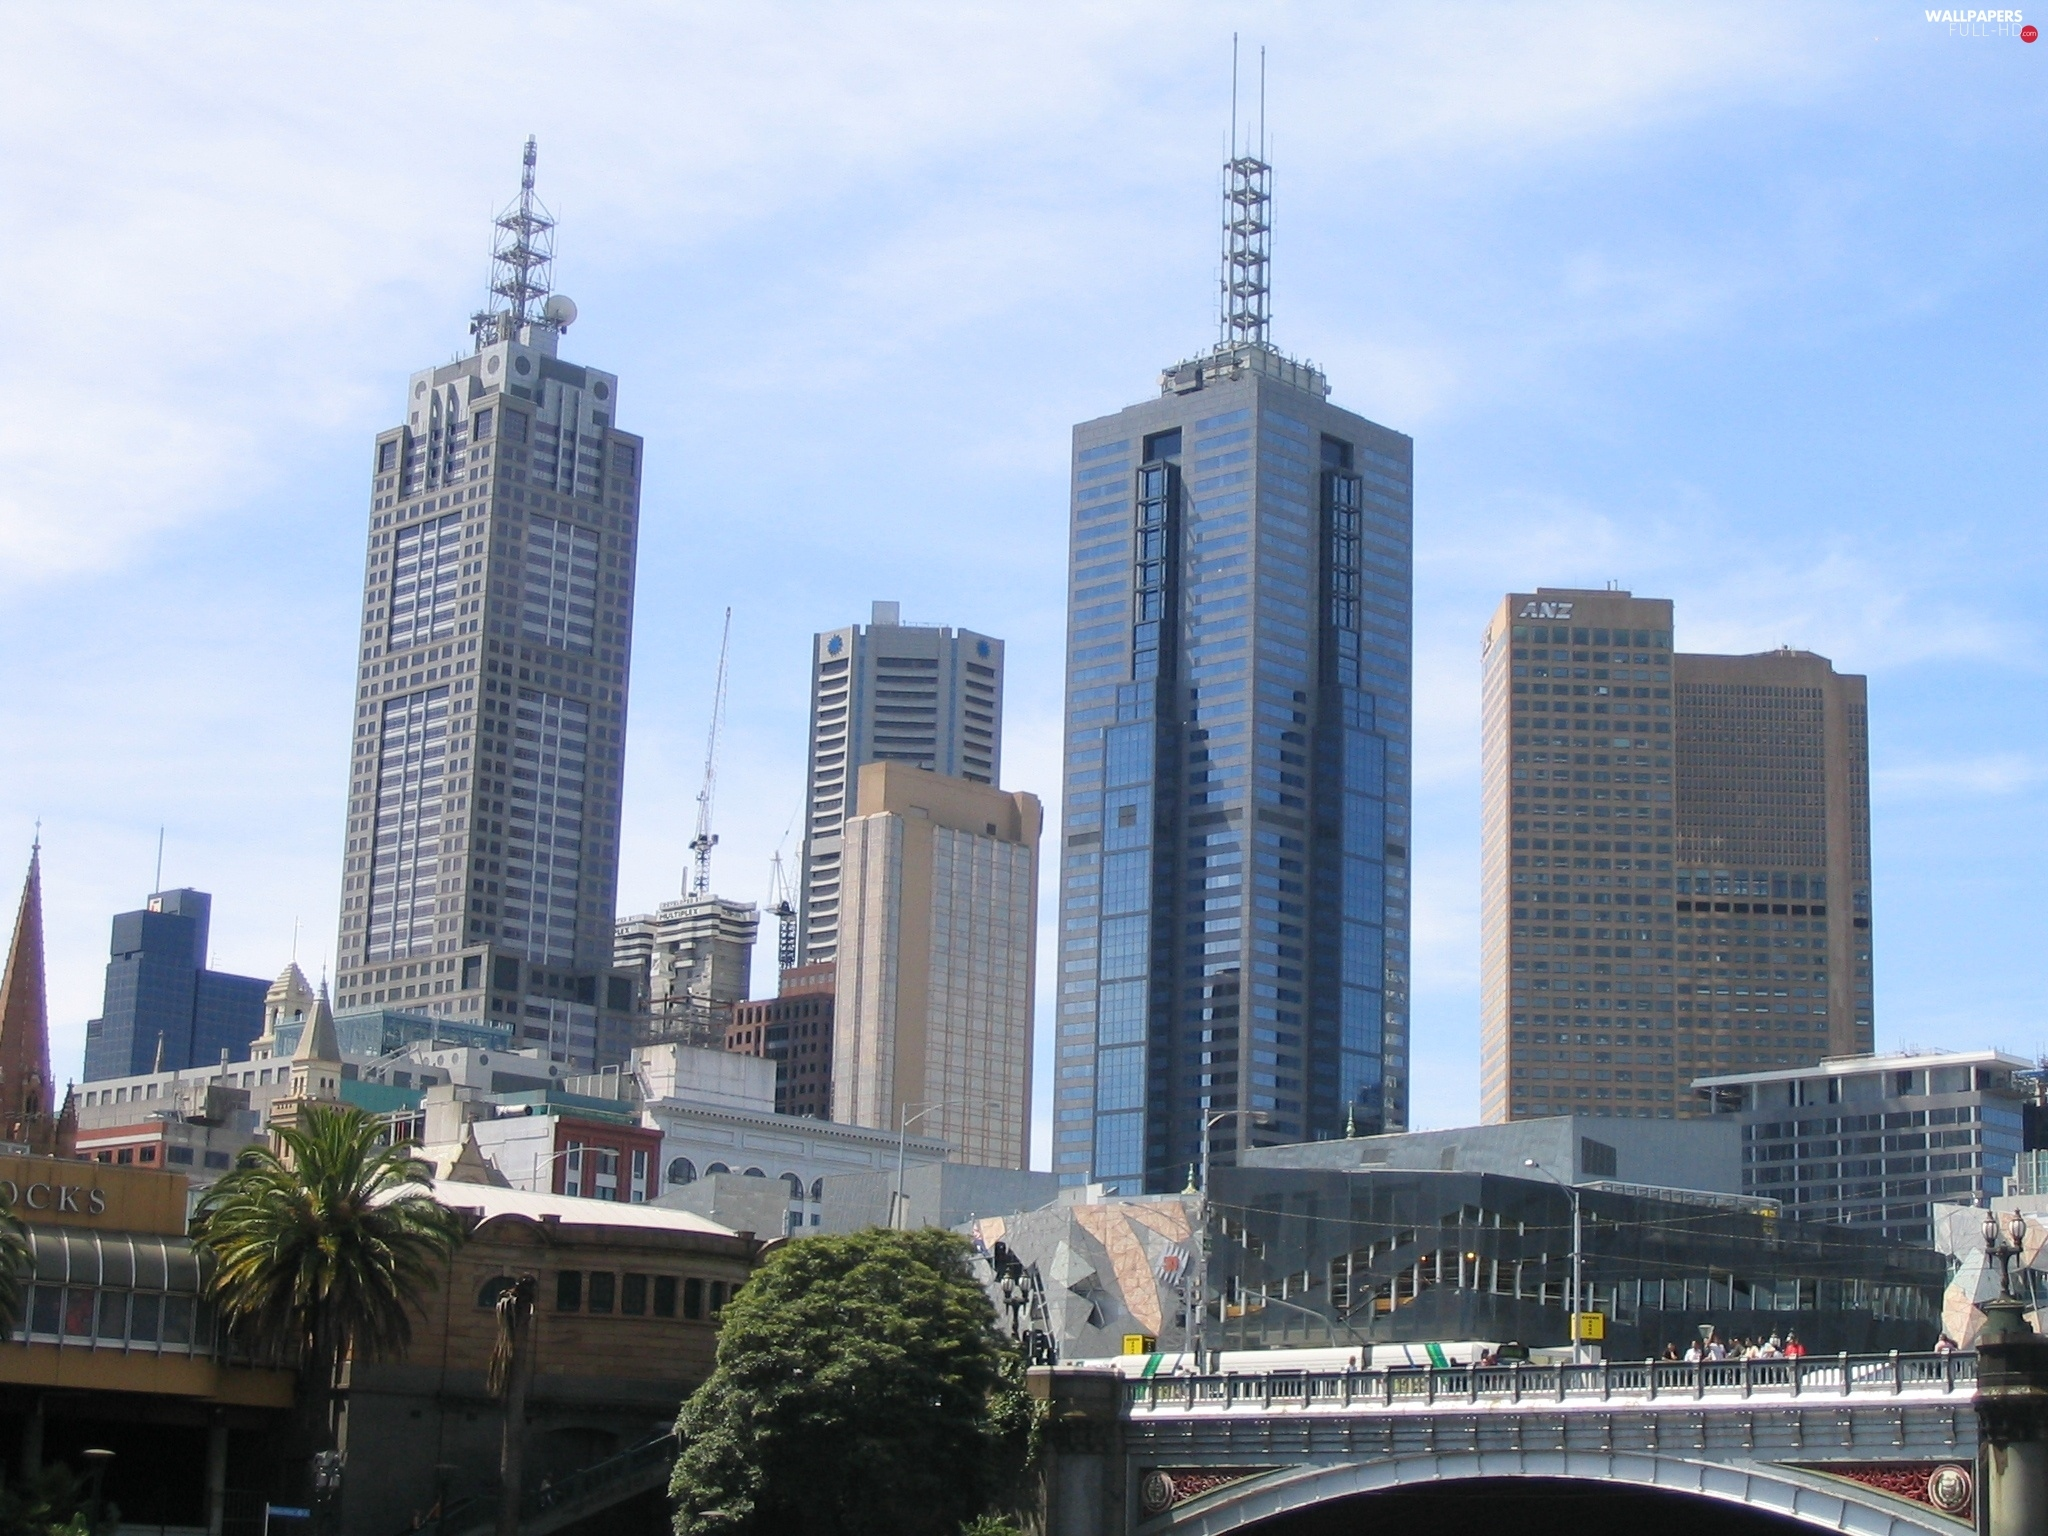 architecture, bridge, Melbourne